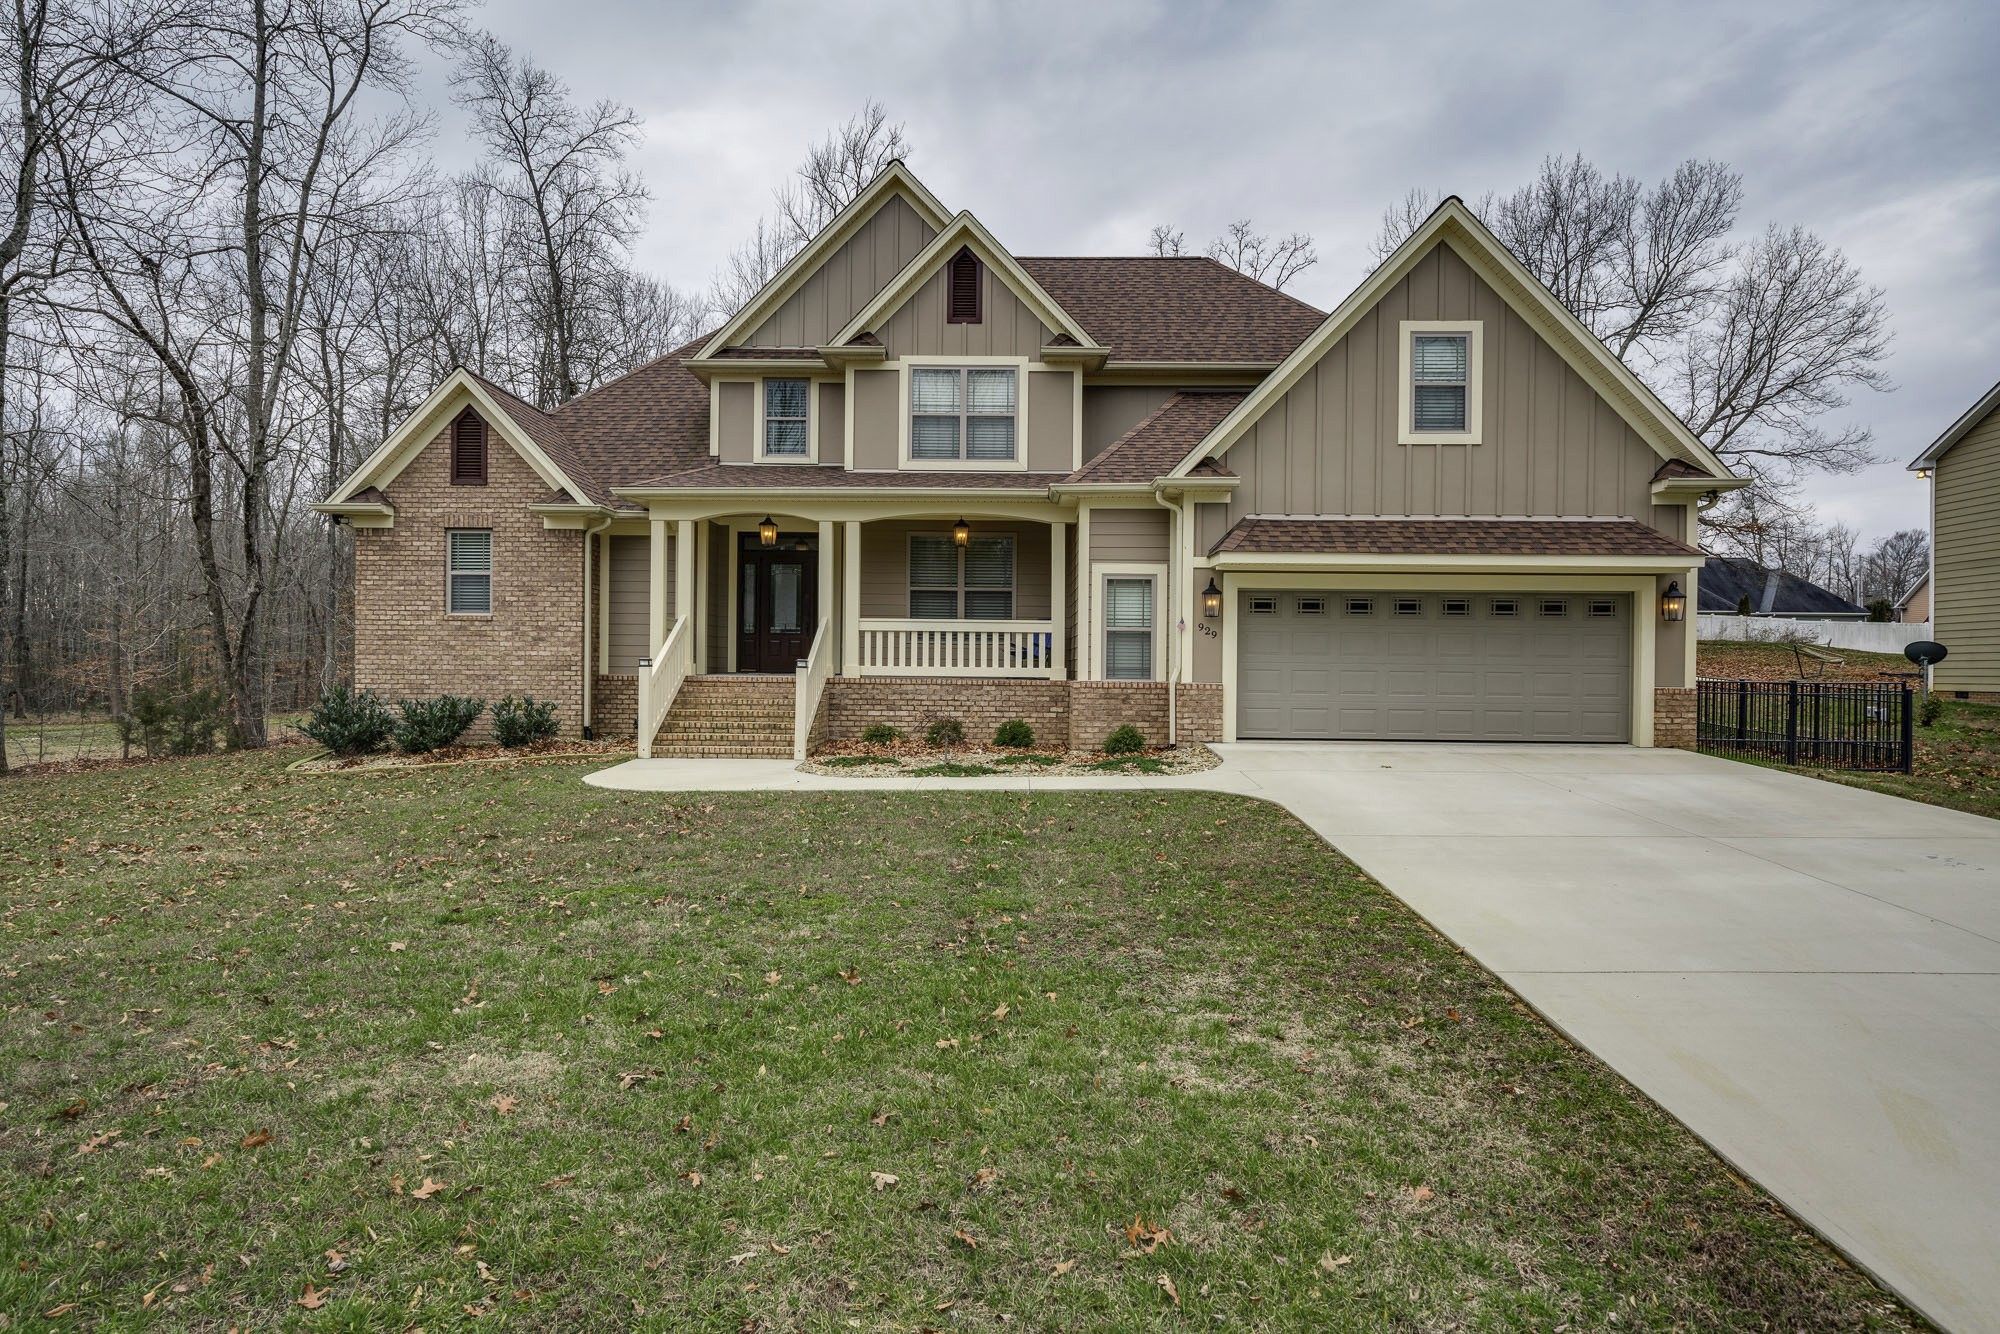 929 Green Meadow Rd, Cookeville, TN 38506 - Cookeville, TN real estate listing